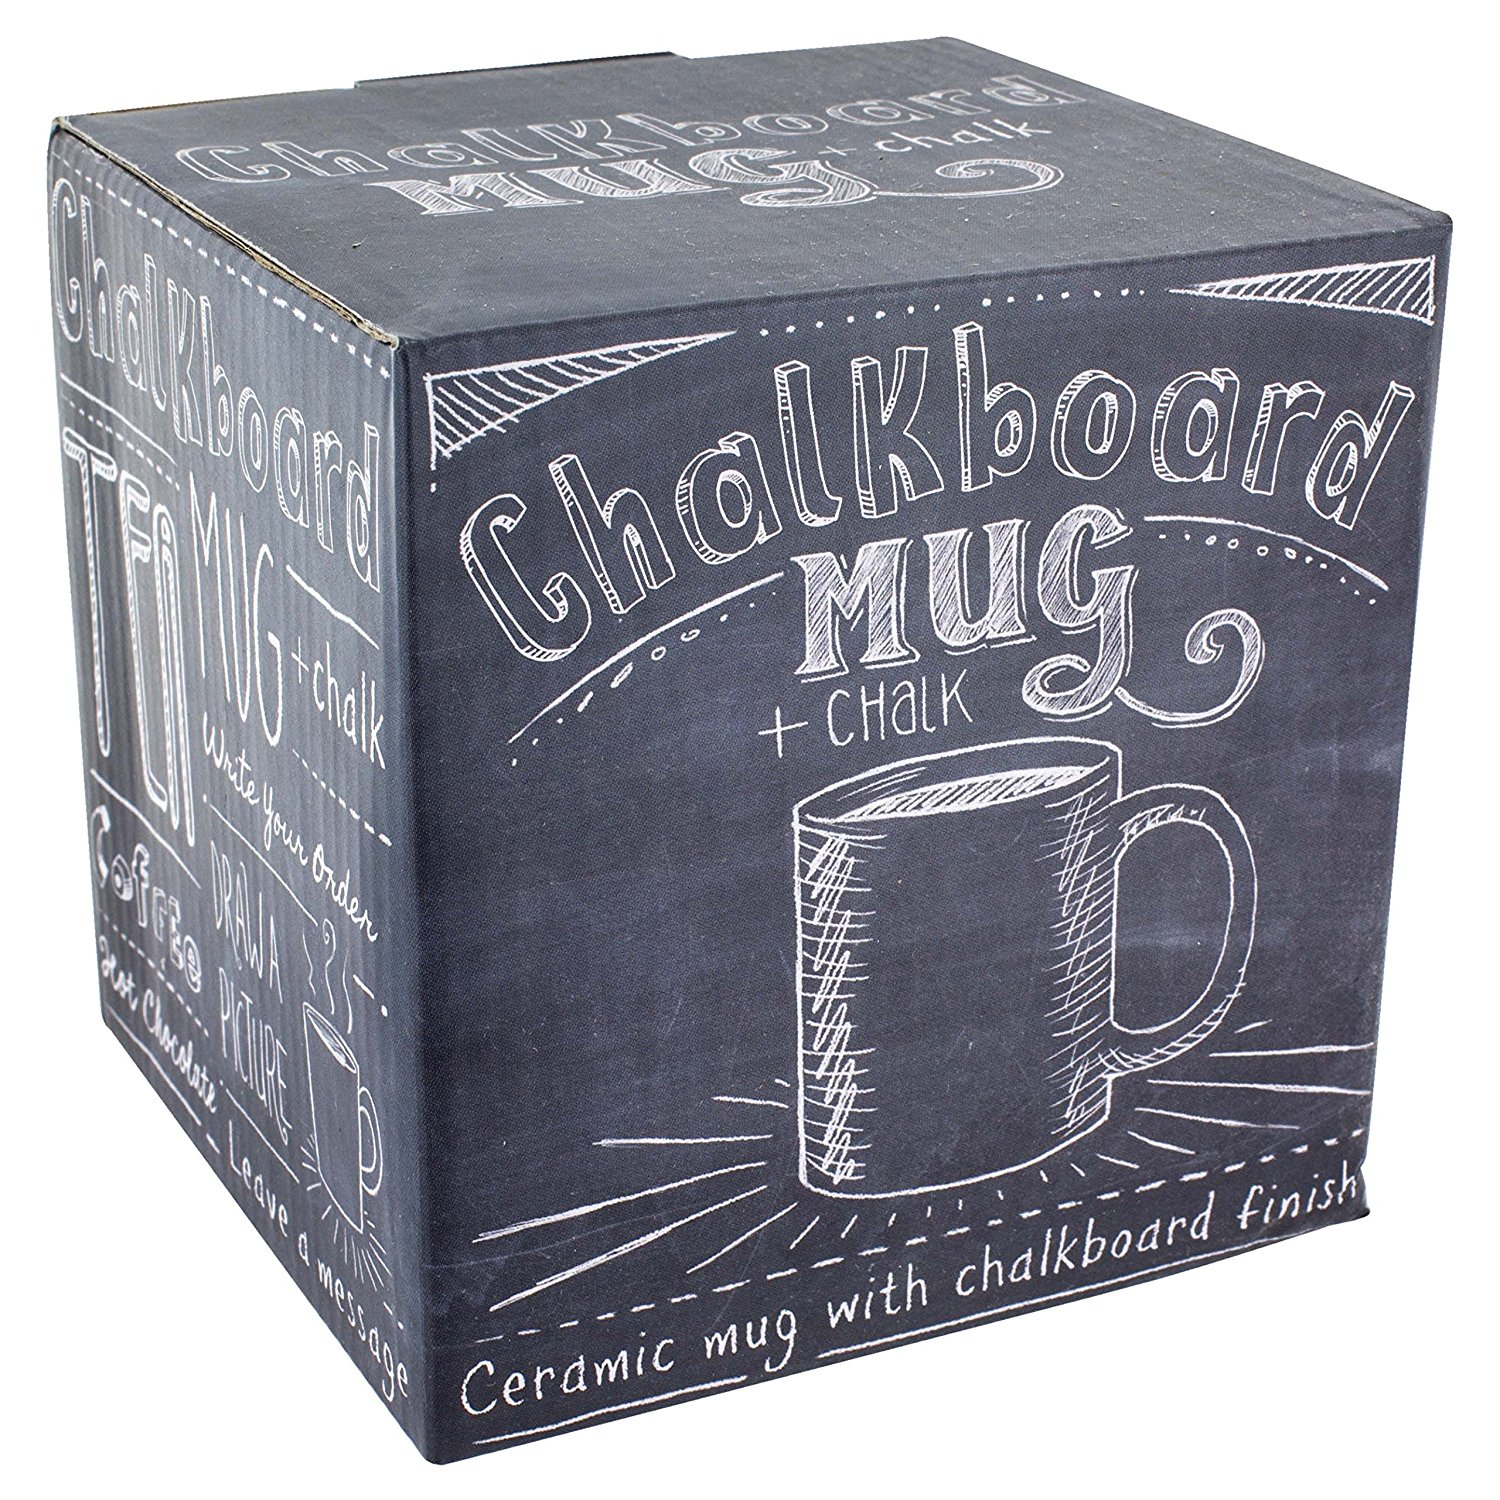 This chalkboard coffee mug makes a great gift, especially for your colleagues